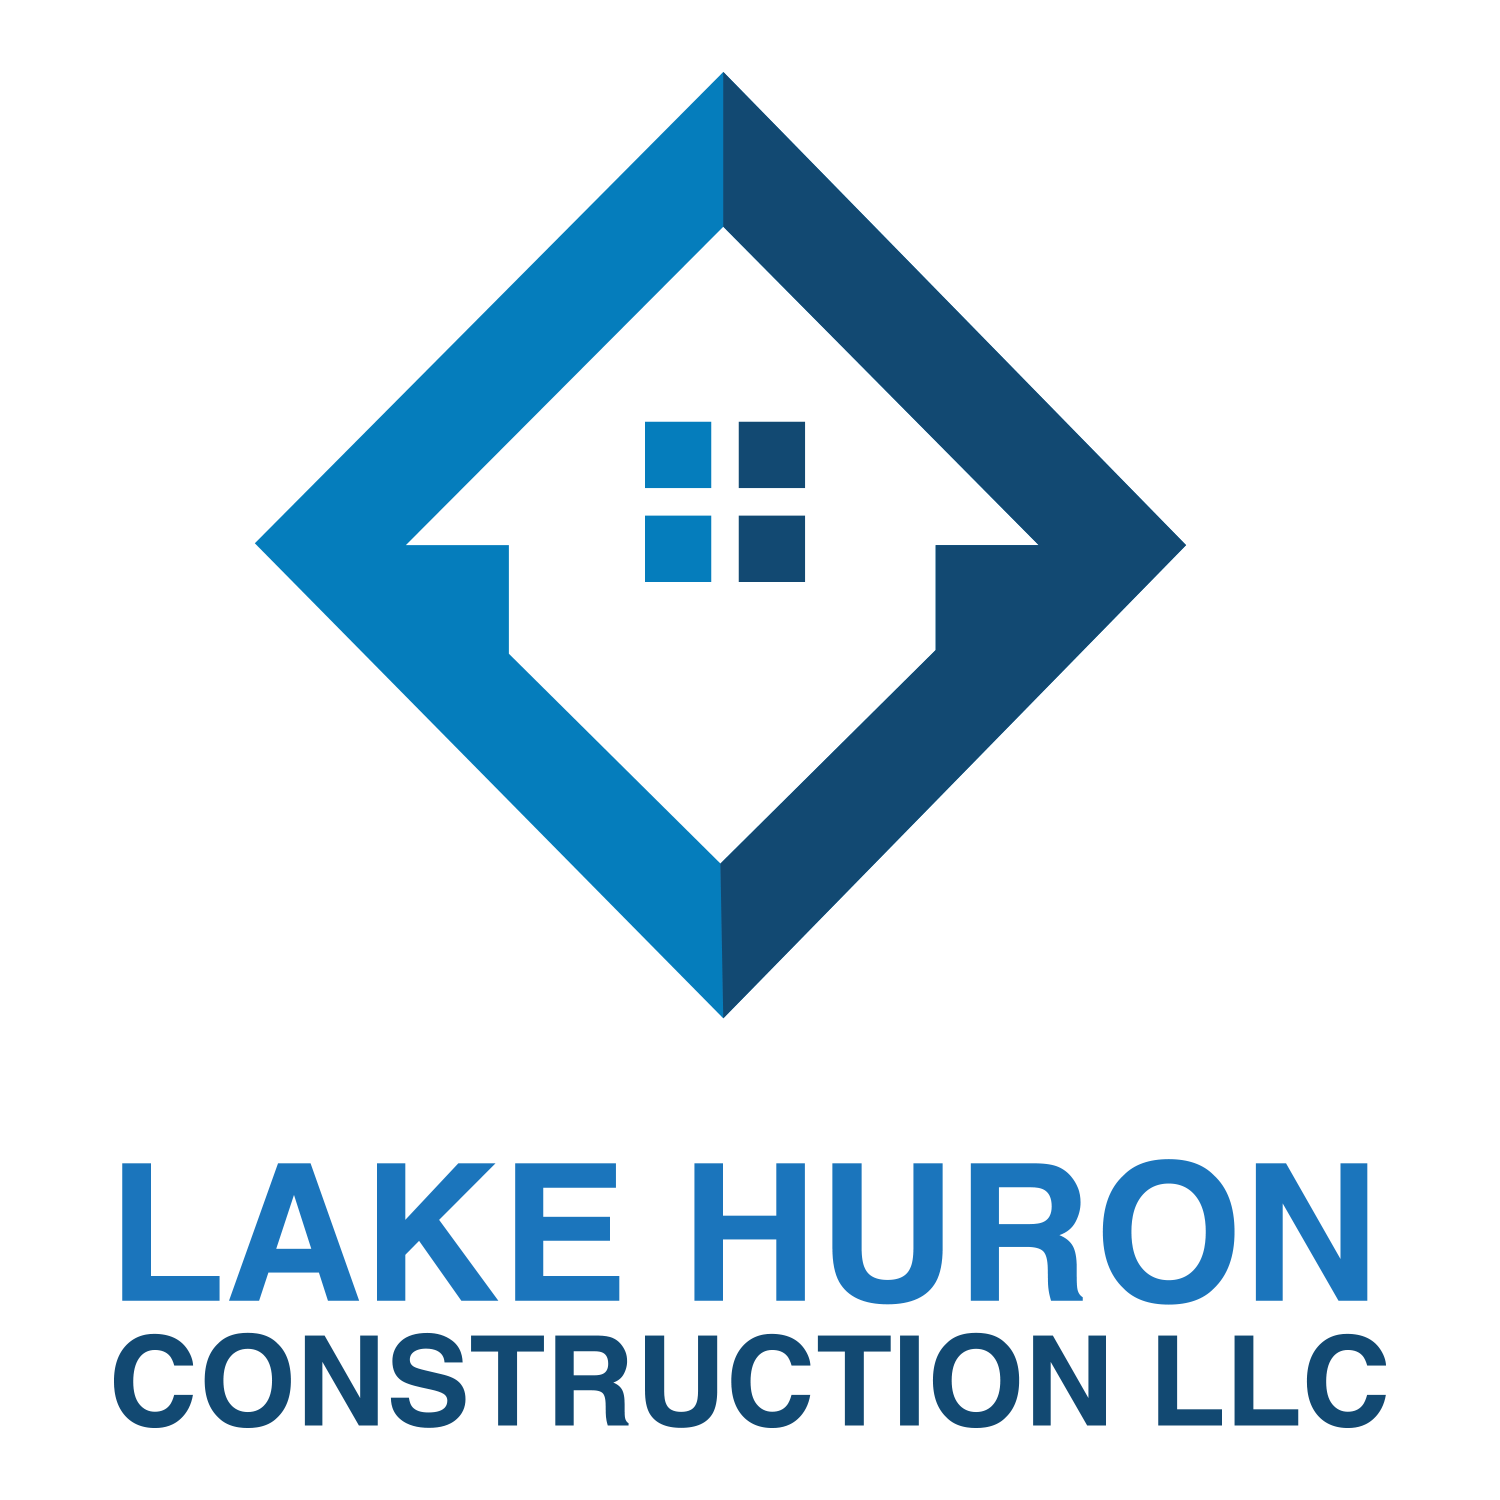 Lake Huron Construction LLC